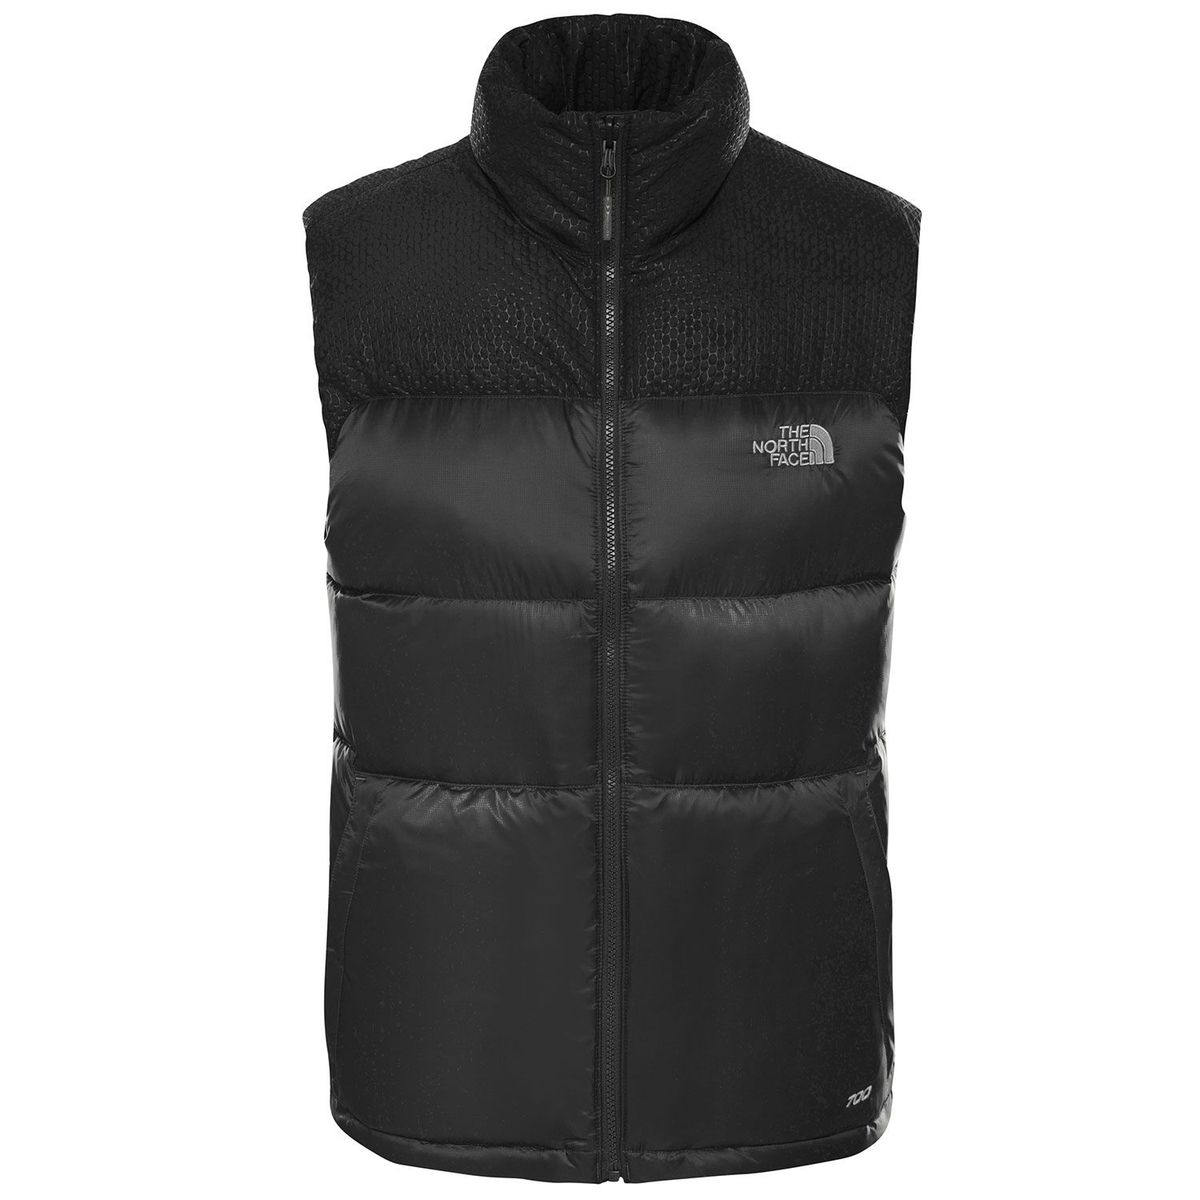 The North Face mens Nevero Down Nuptse Vest